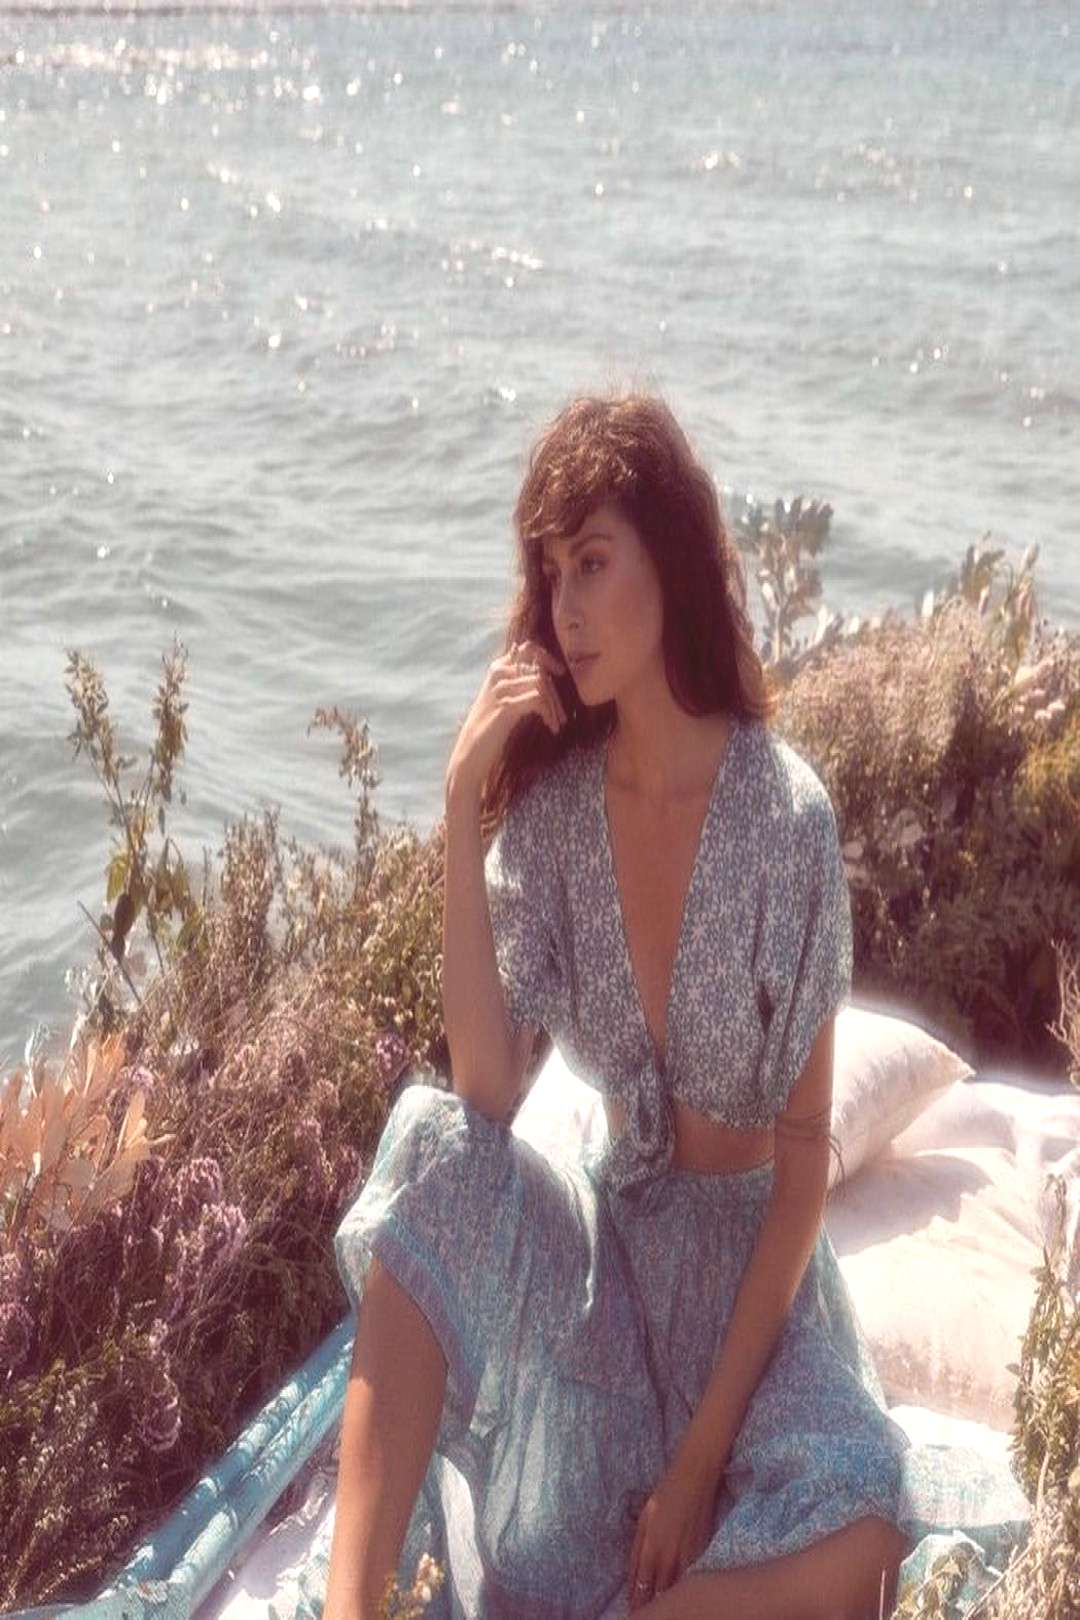 Fashion and beauty on April 24 2020 1 person standing ocean outdo